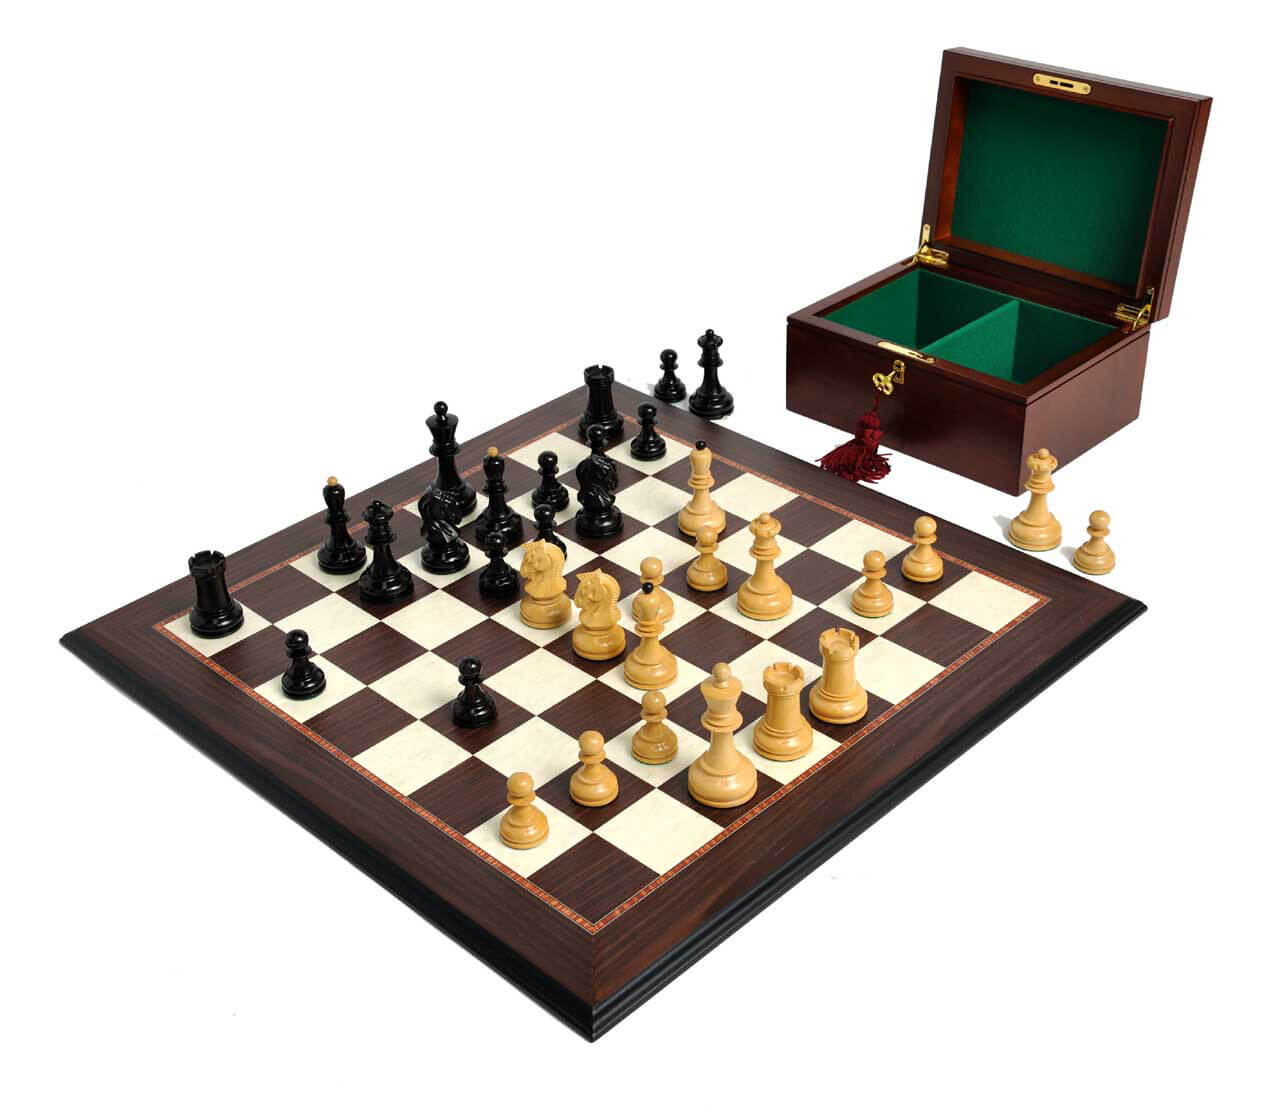 Contemporary Chess Set The Dubrovnik Chess Set Box Amp Board Combination